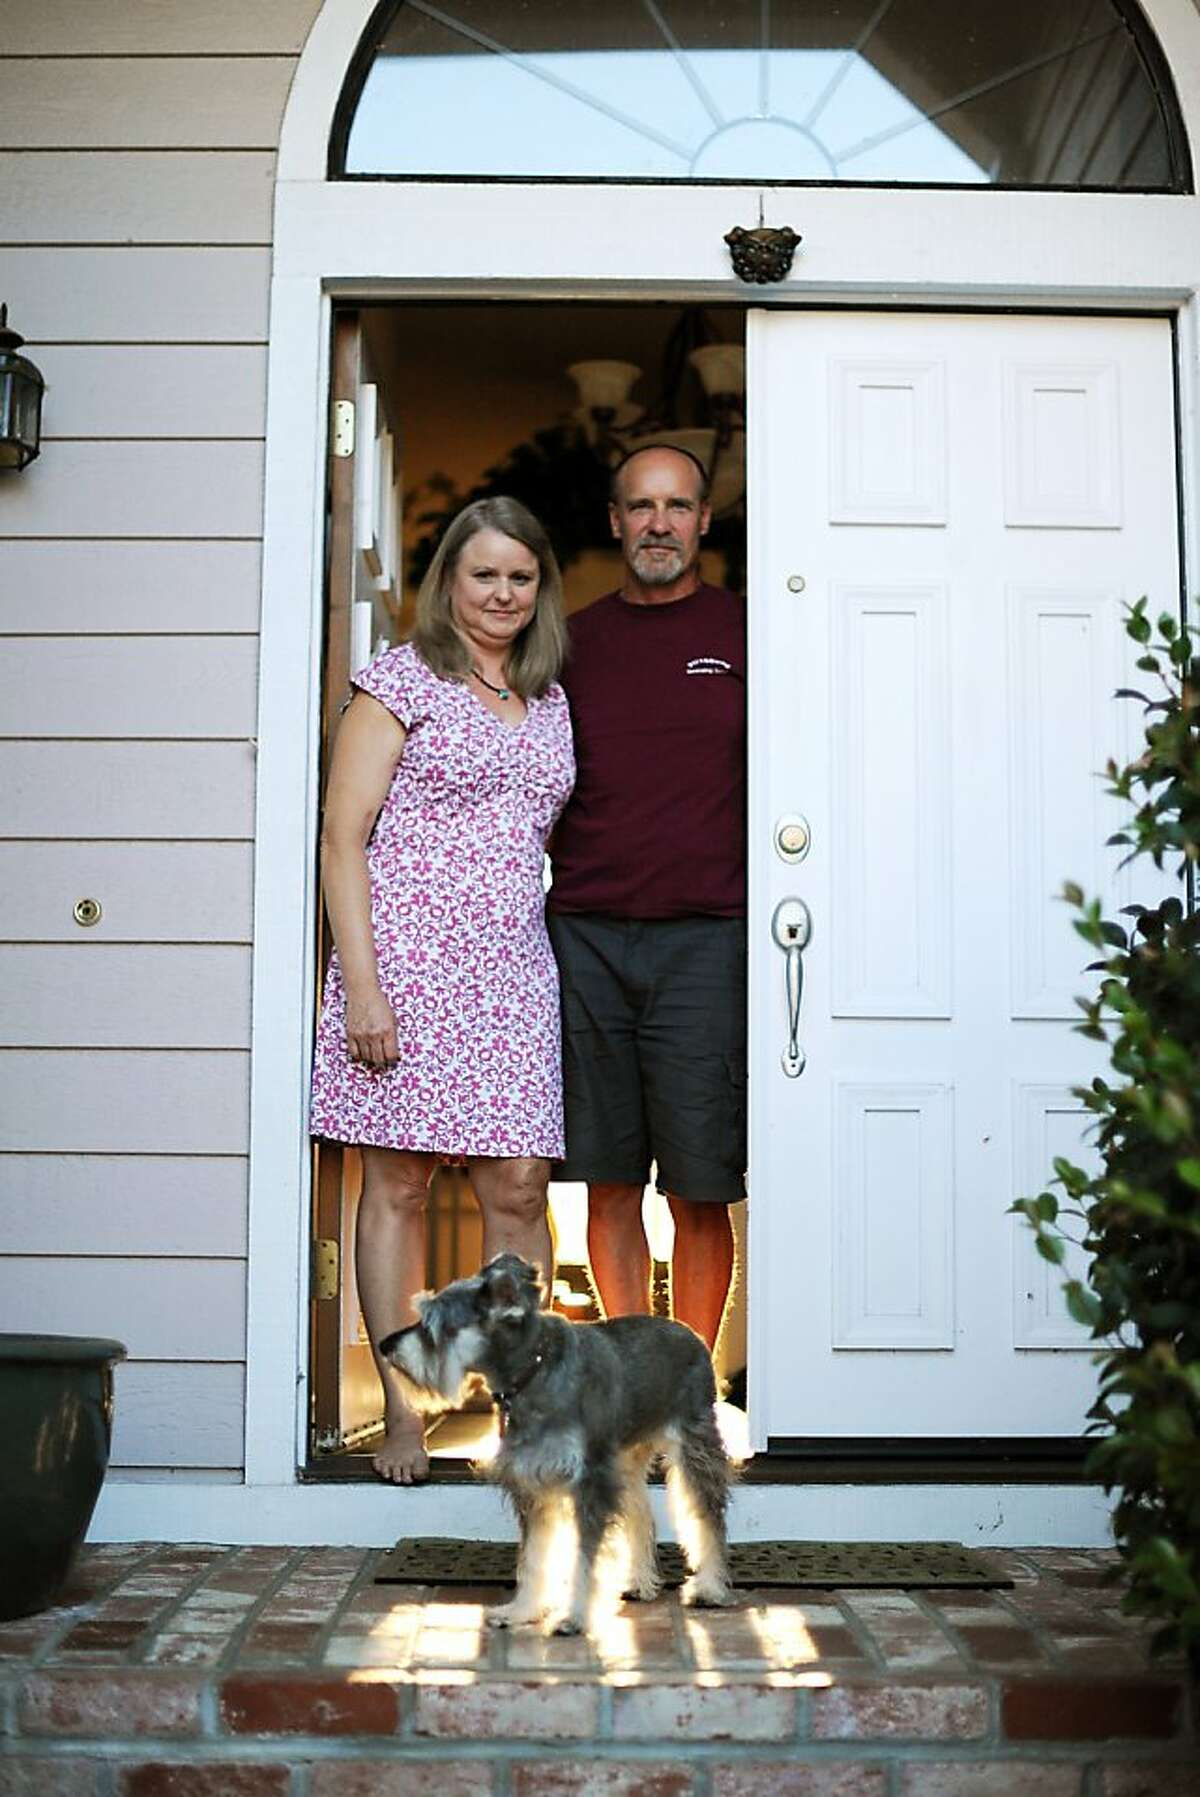 Lynn Opp, diagnosed with the auto-immune disorder Celiac disease, and her husband Alan Opp stand at their front door with their dog Katie at their home in Concord, California, Thursday, July 25, 2013.